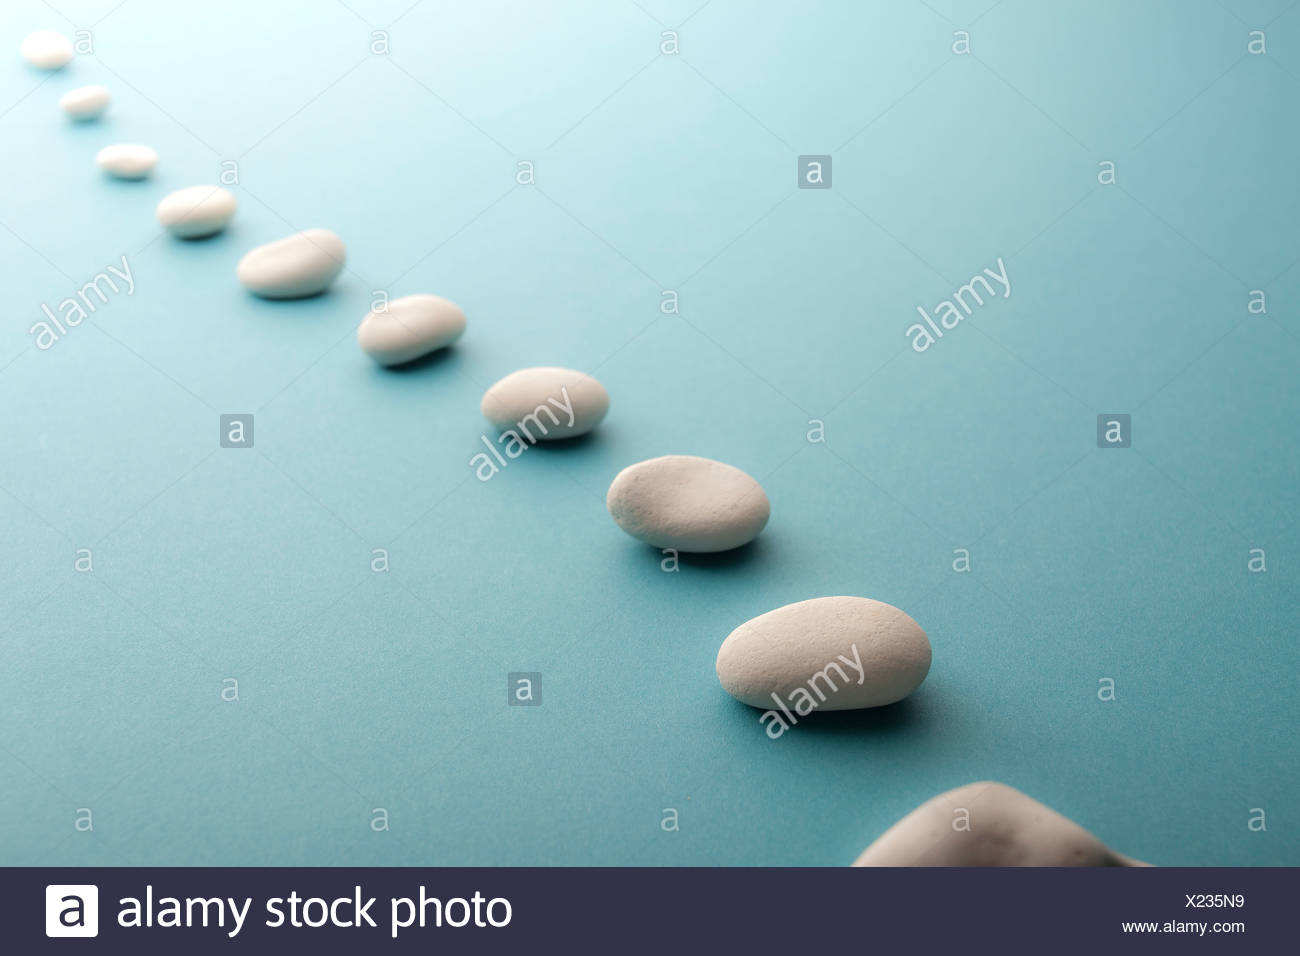 White stones all lined up in perspective - Stock Image